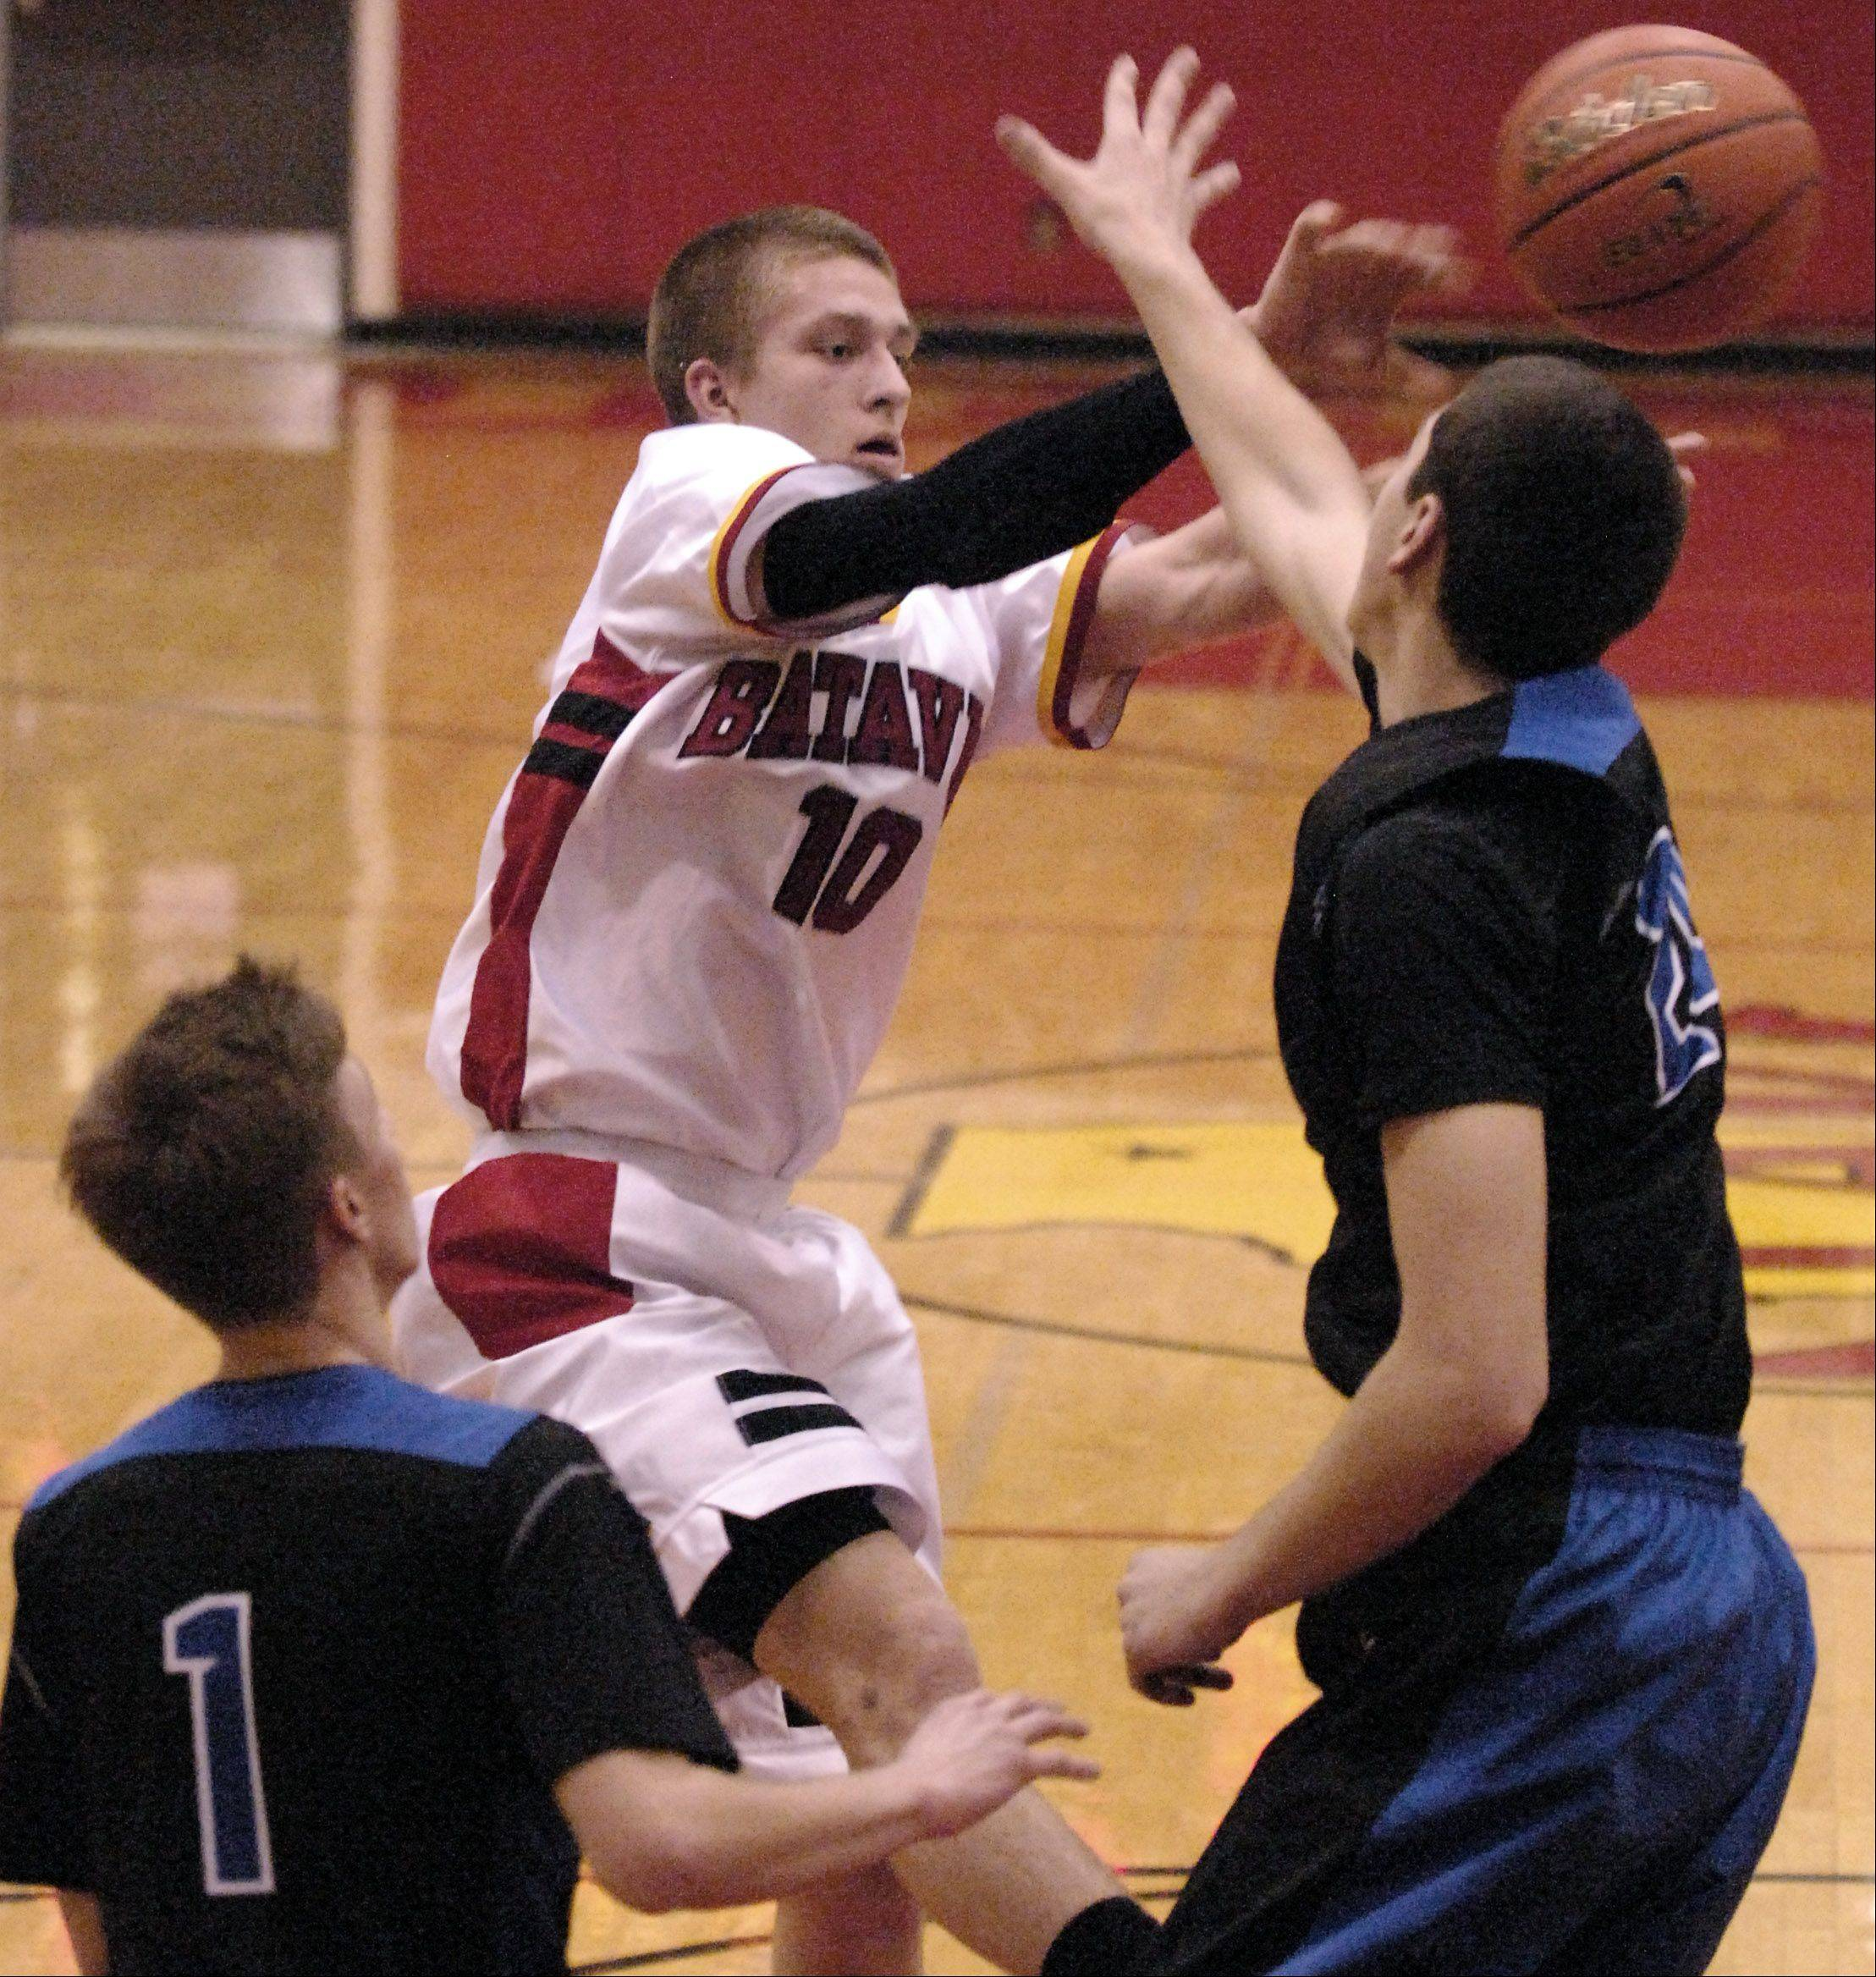 Batavia's Mike Rueffer passes out of the double team against St. Charles North during Thursday's game at Batavia.